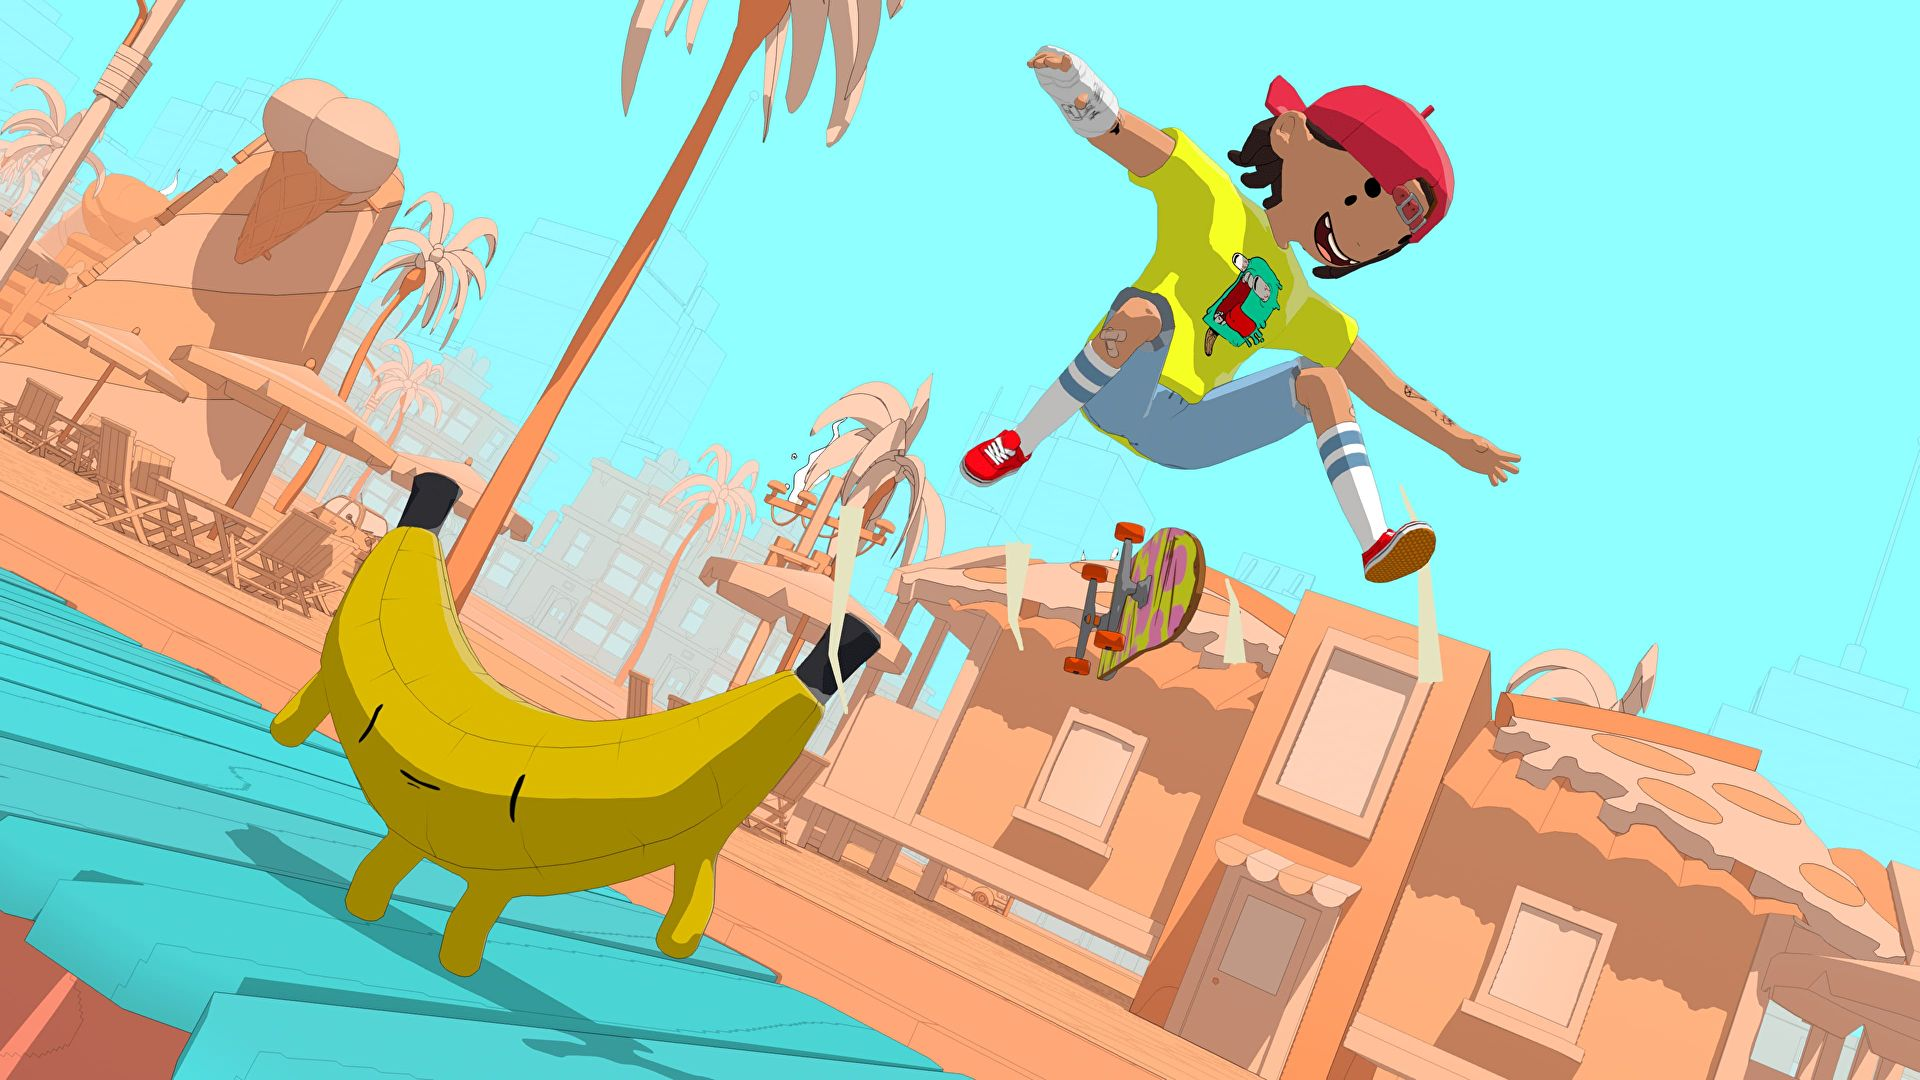 OlliOlli World hits the park this year with a rad new world of tricks